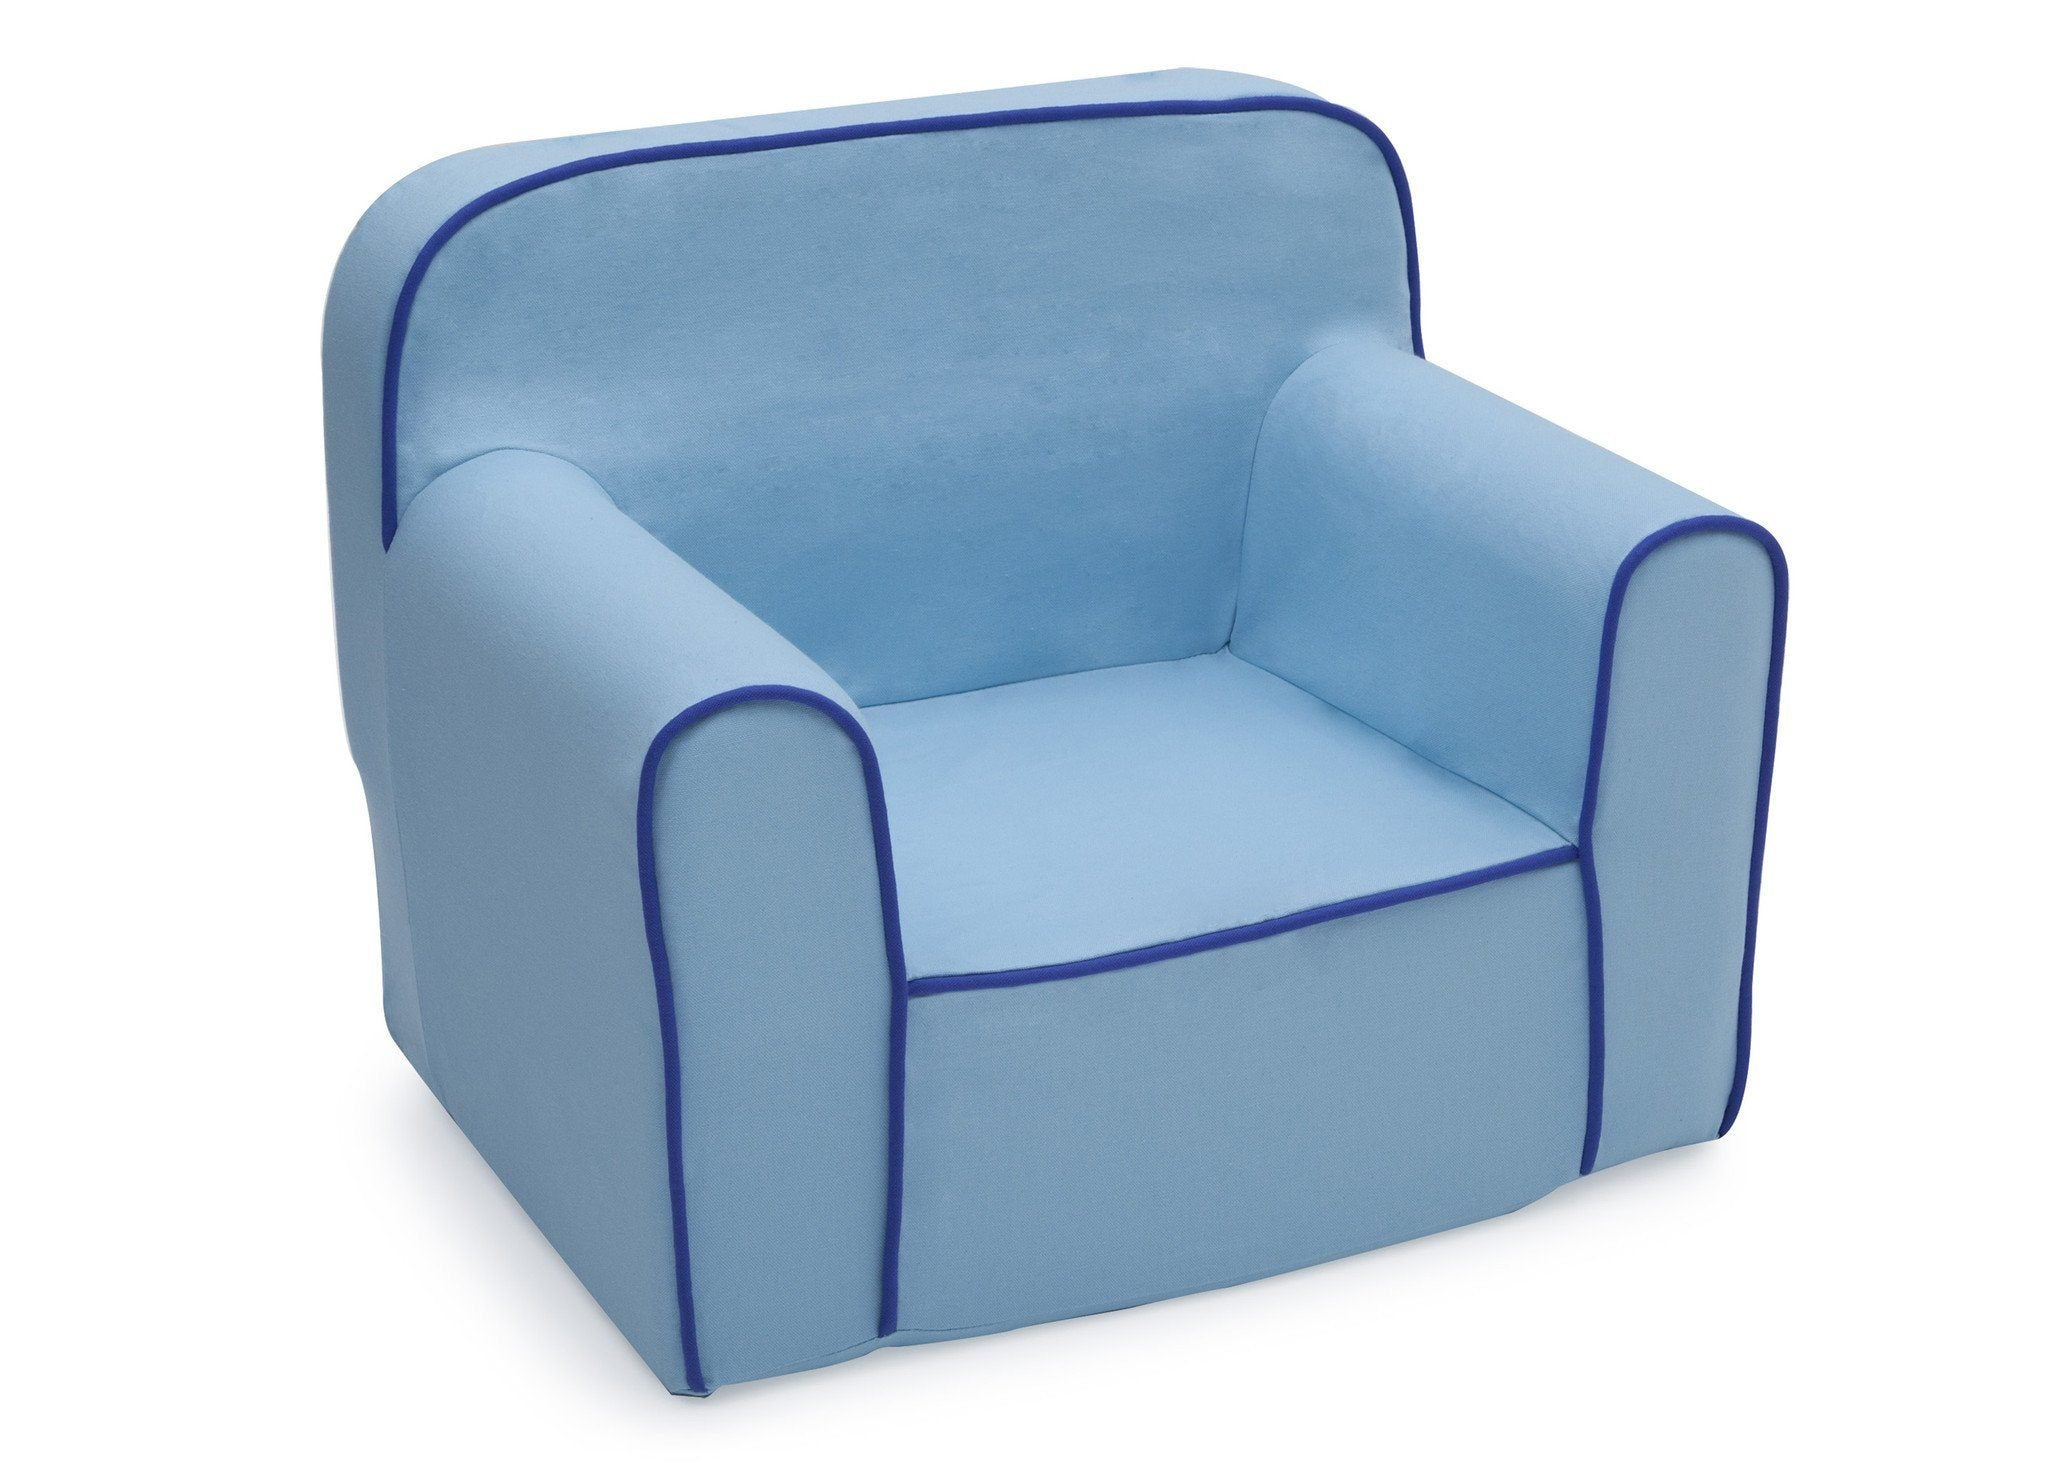 A1a · Delta Children Blue Foam Snuggle Chair Style 1, Right View A1a ...